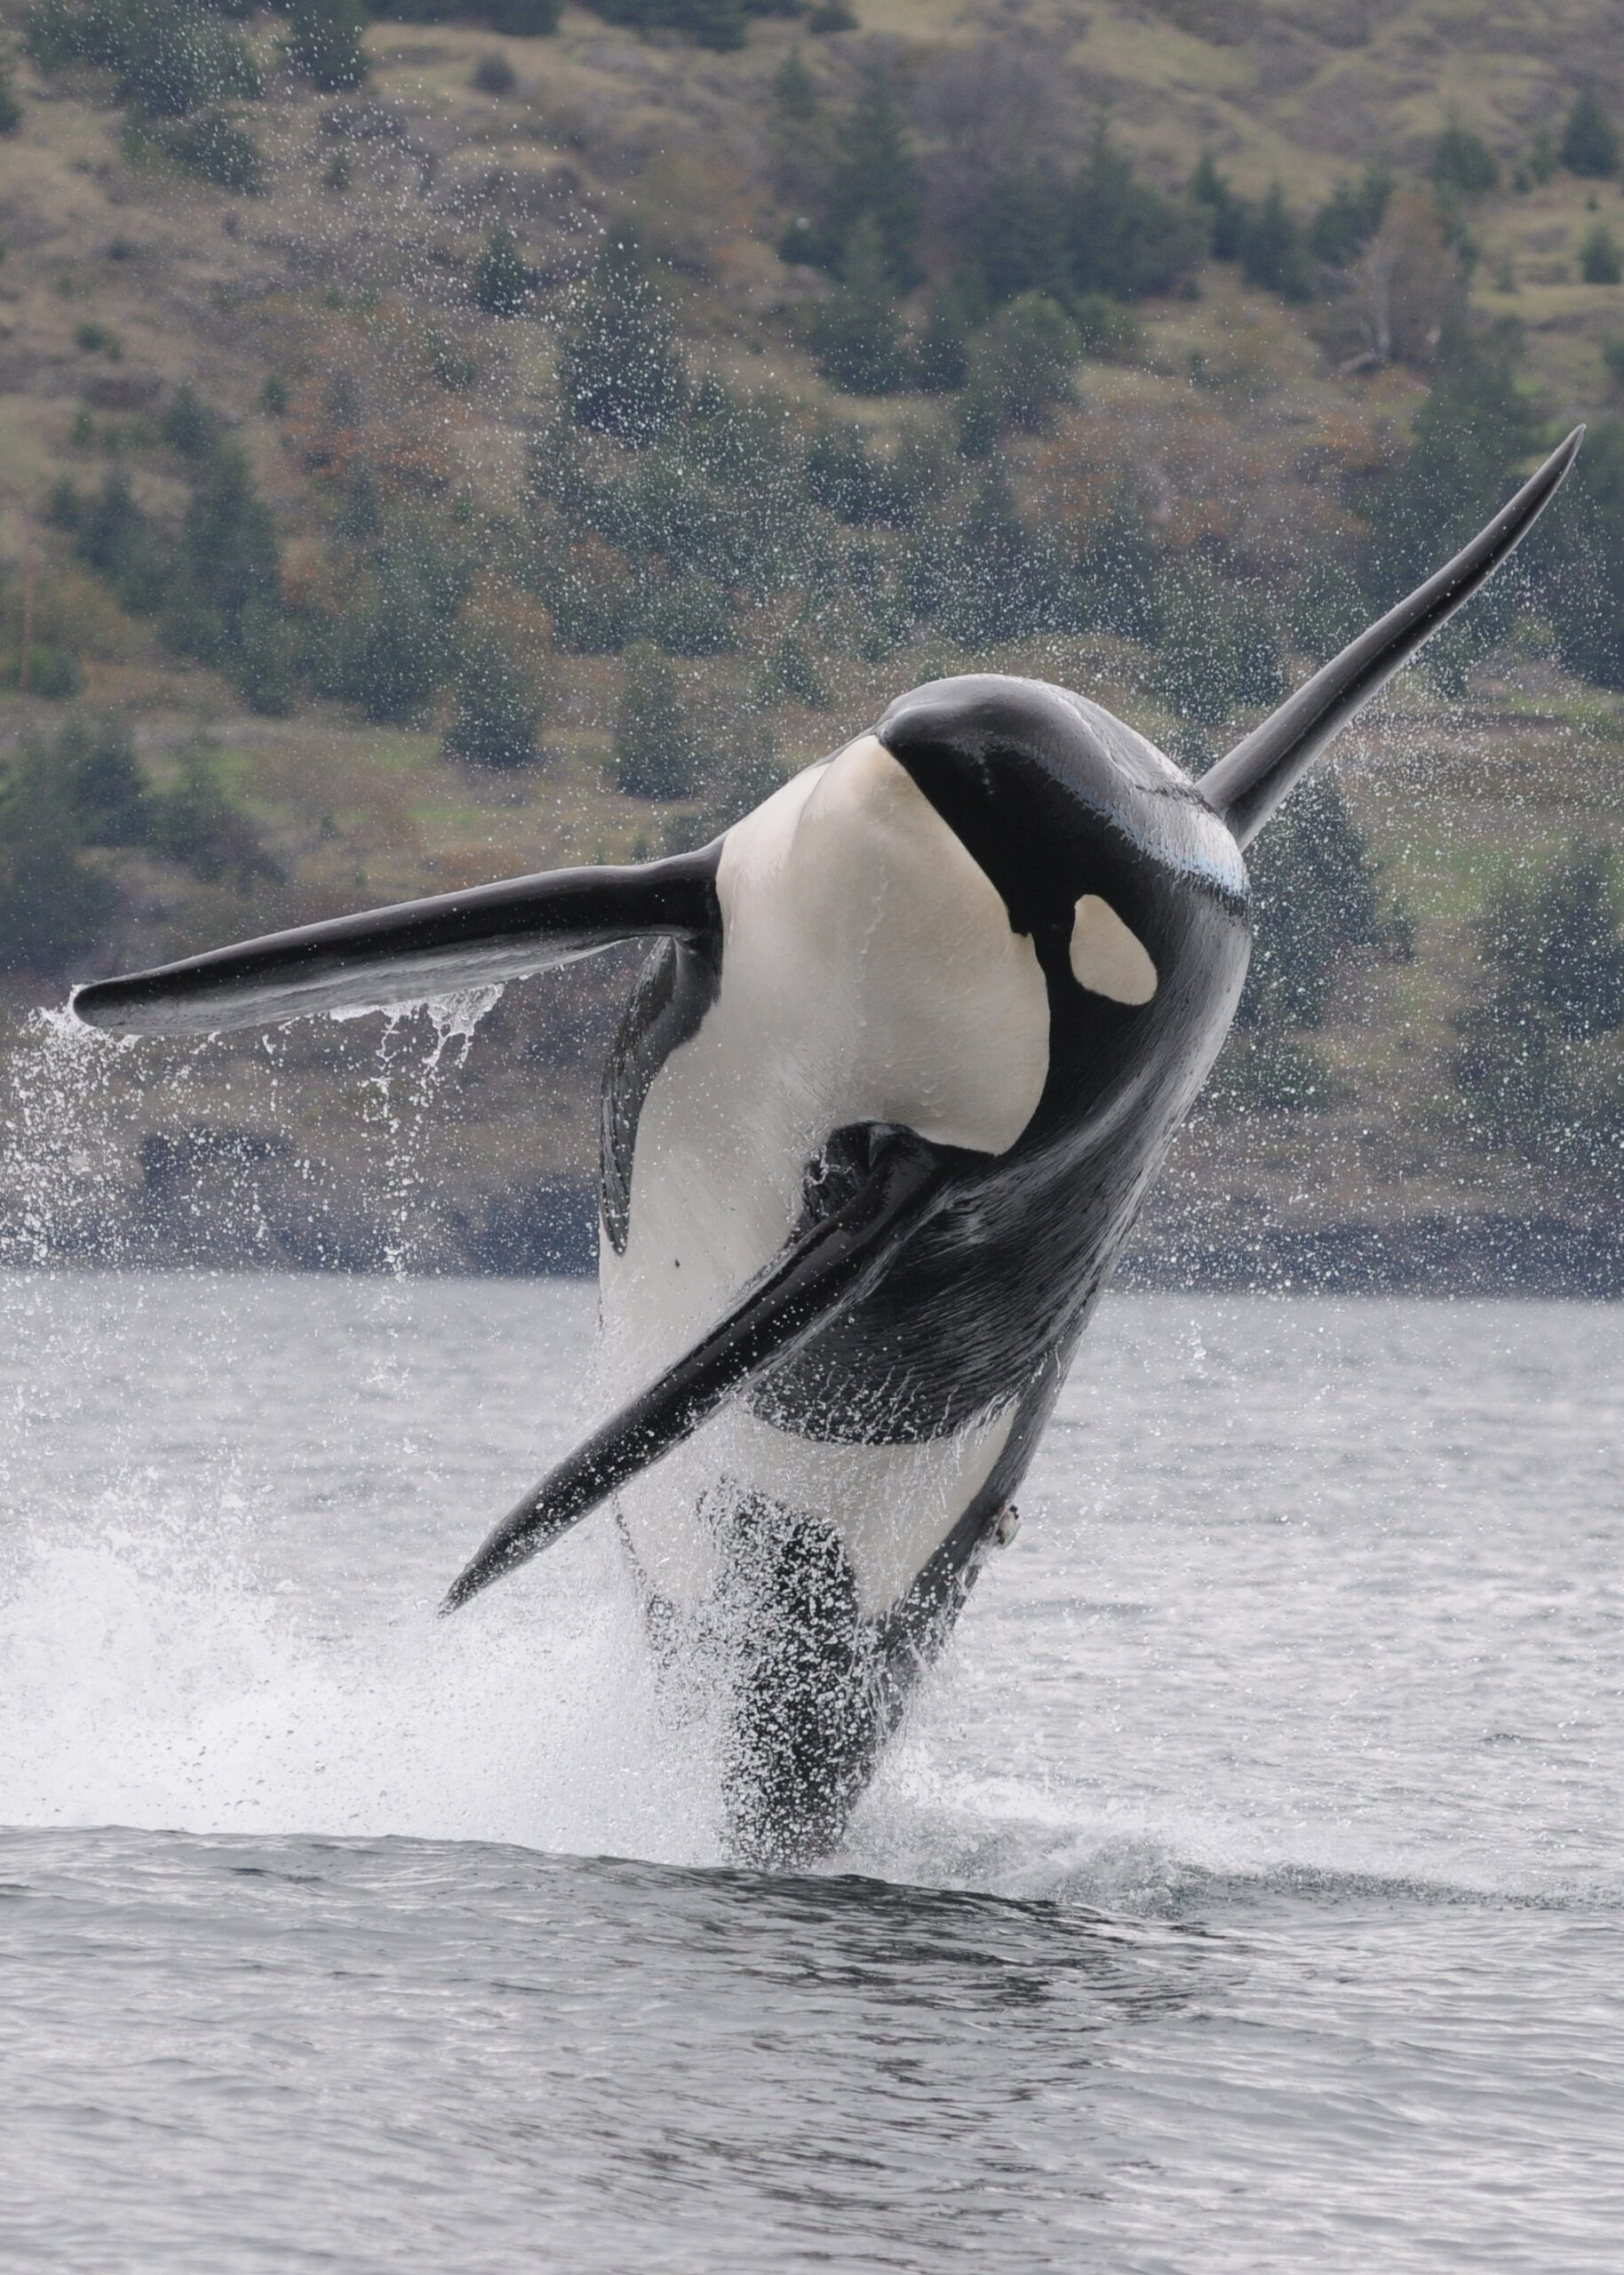 A killer whale, with sharp fins and a black and white body, is seen almost entirely out of the water as it leaps and creates a splash in front of a hill with evergreen trees.